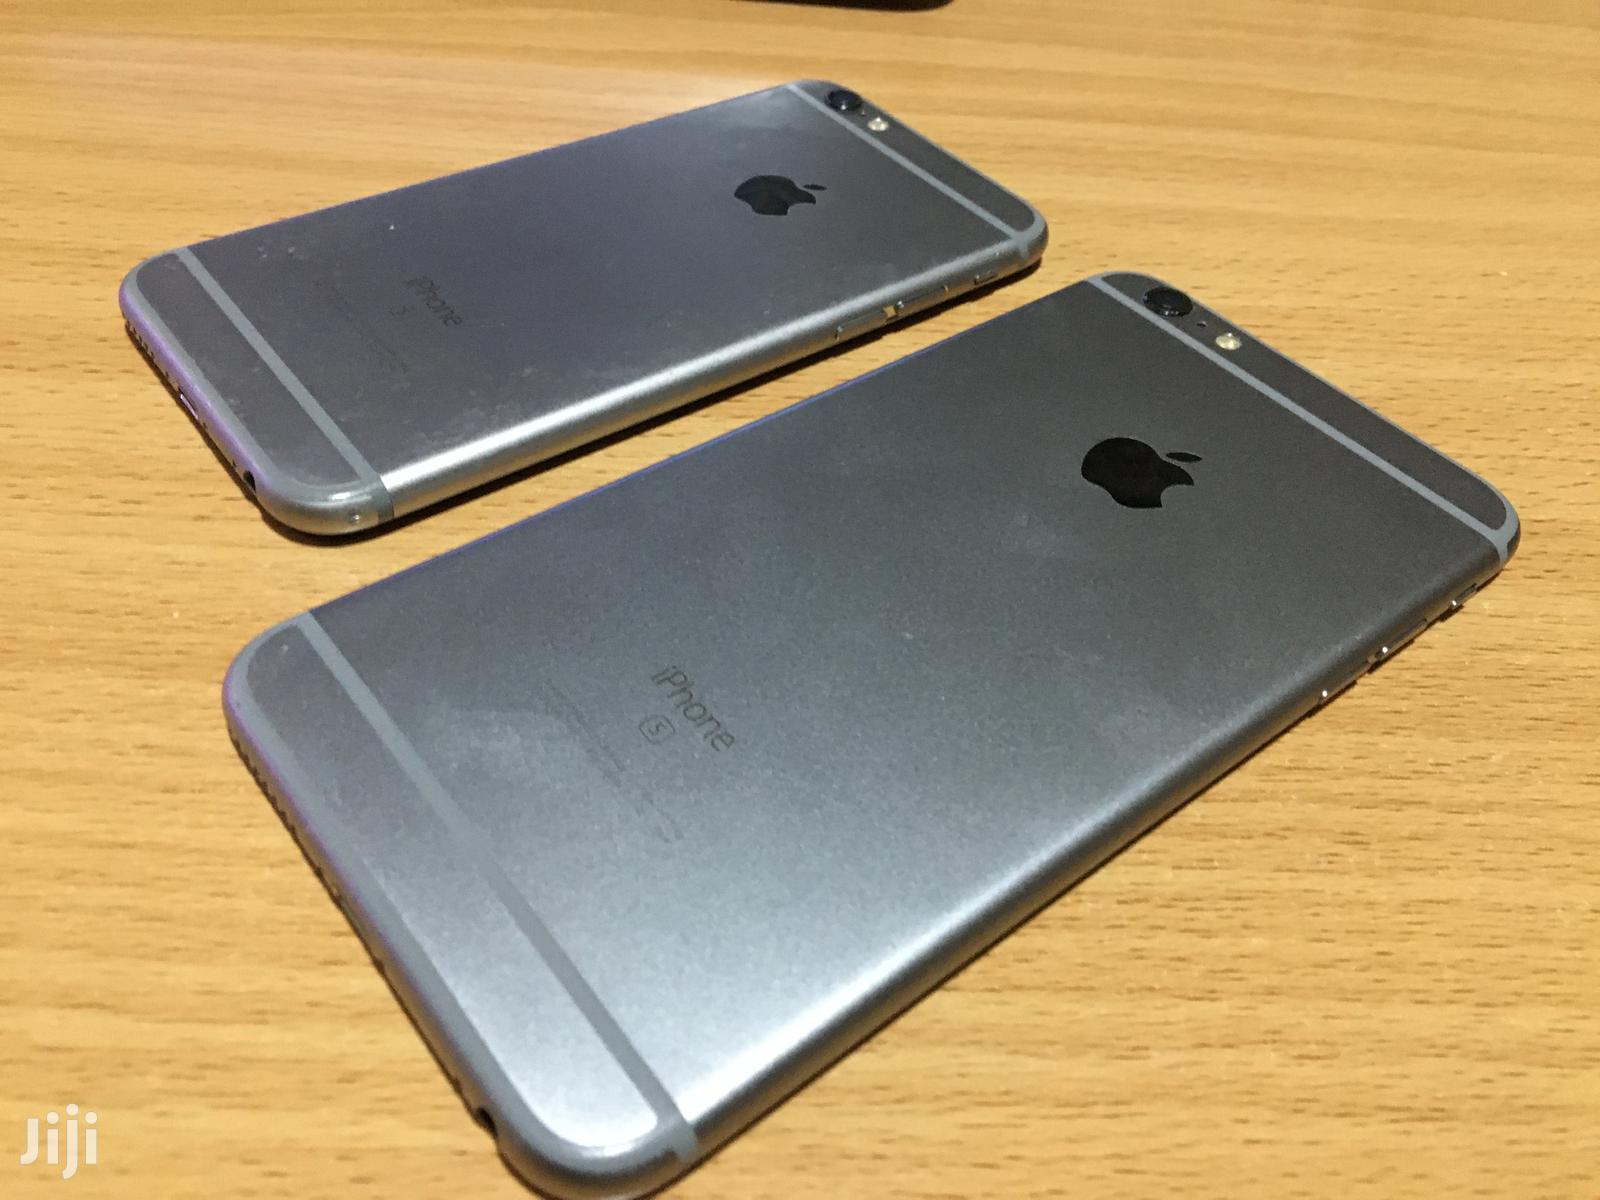 Apple iPhone 6s Plus 16 GB Gray | Mobile Phones for sale in Nairobi Central, Nairobi, Kenya